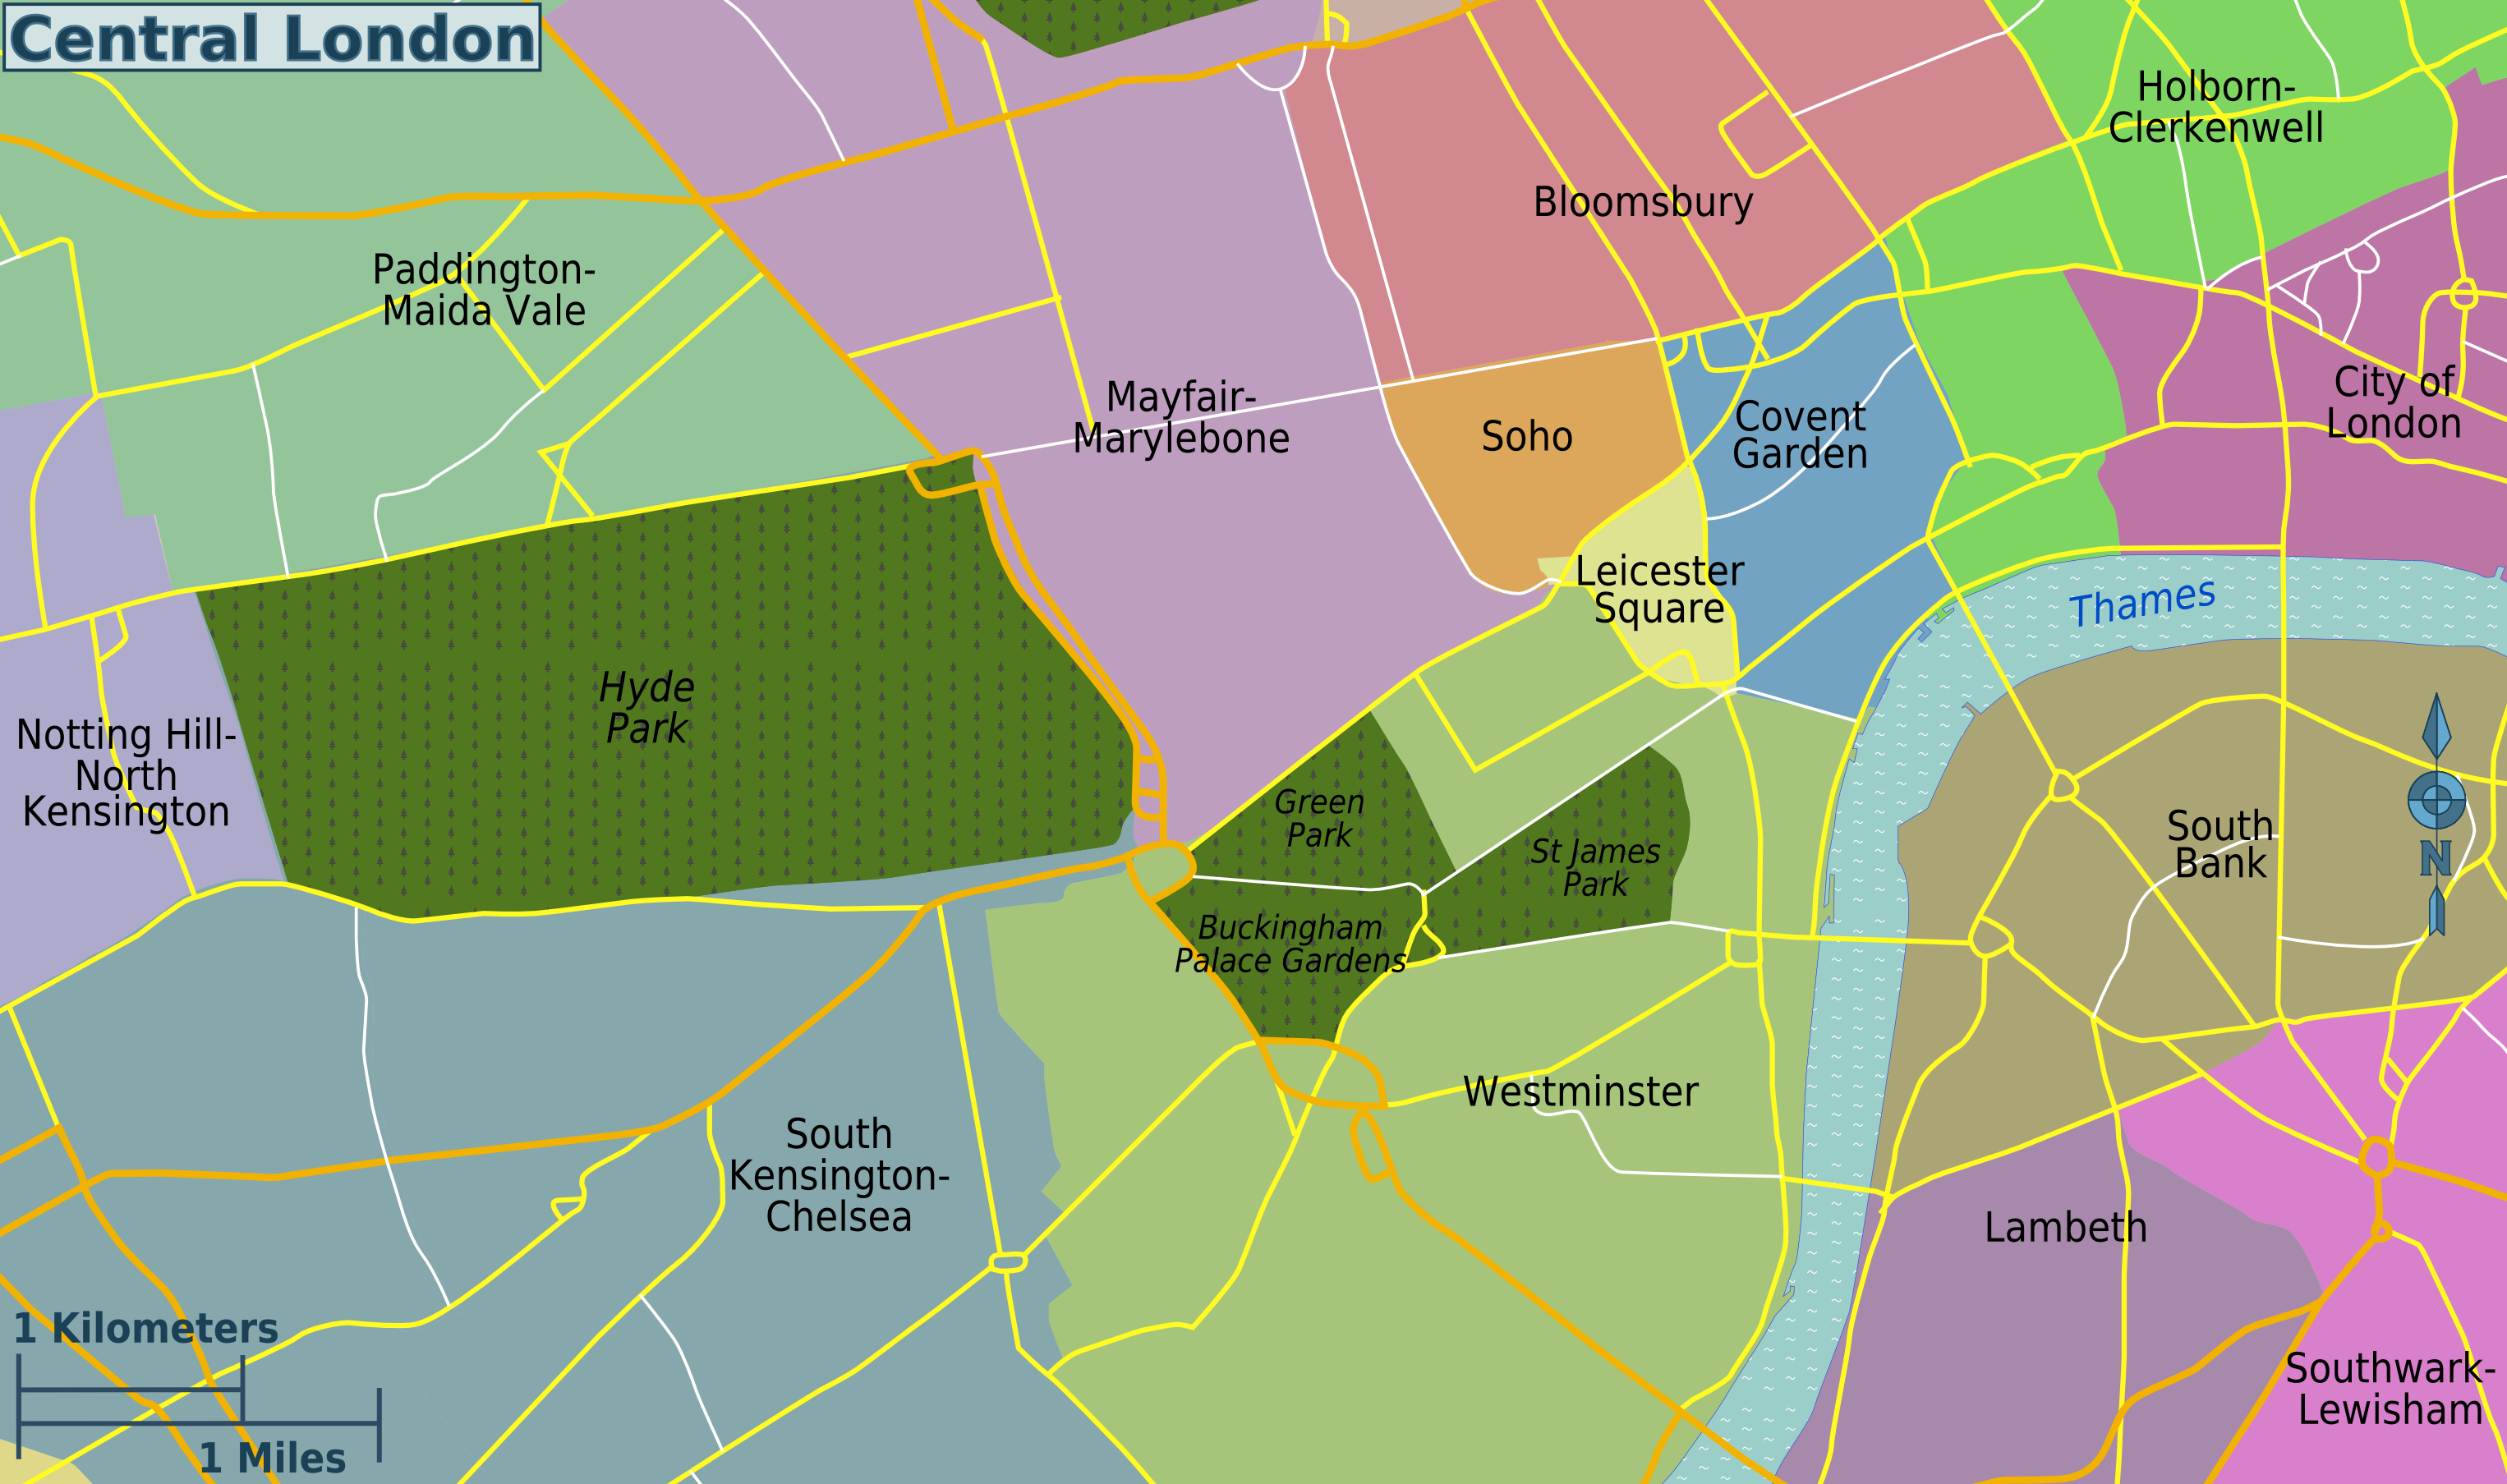 London Map Districts.File Central London Districts Map Png Wikimedia Commons